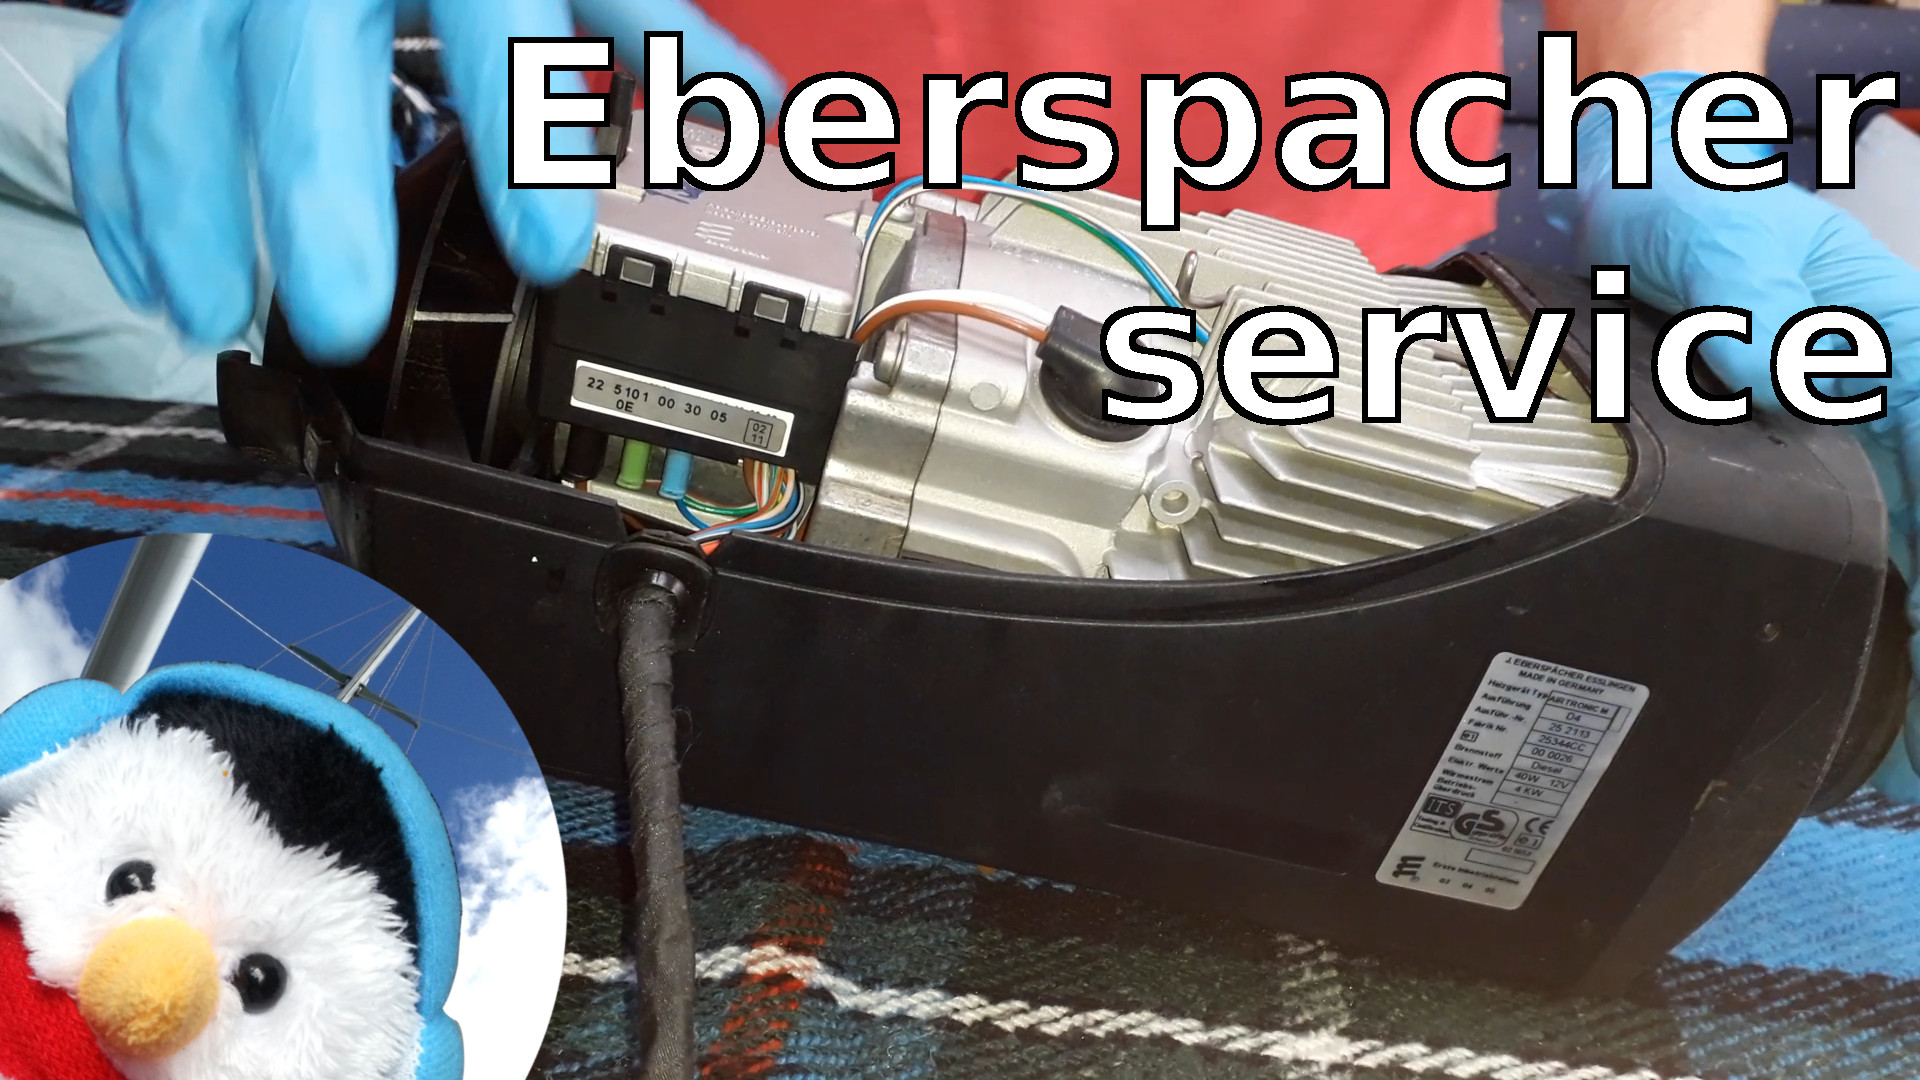 Watch our 'Eberspacher Service' and add comments etc